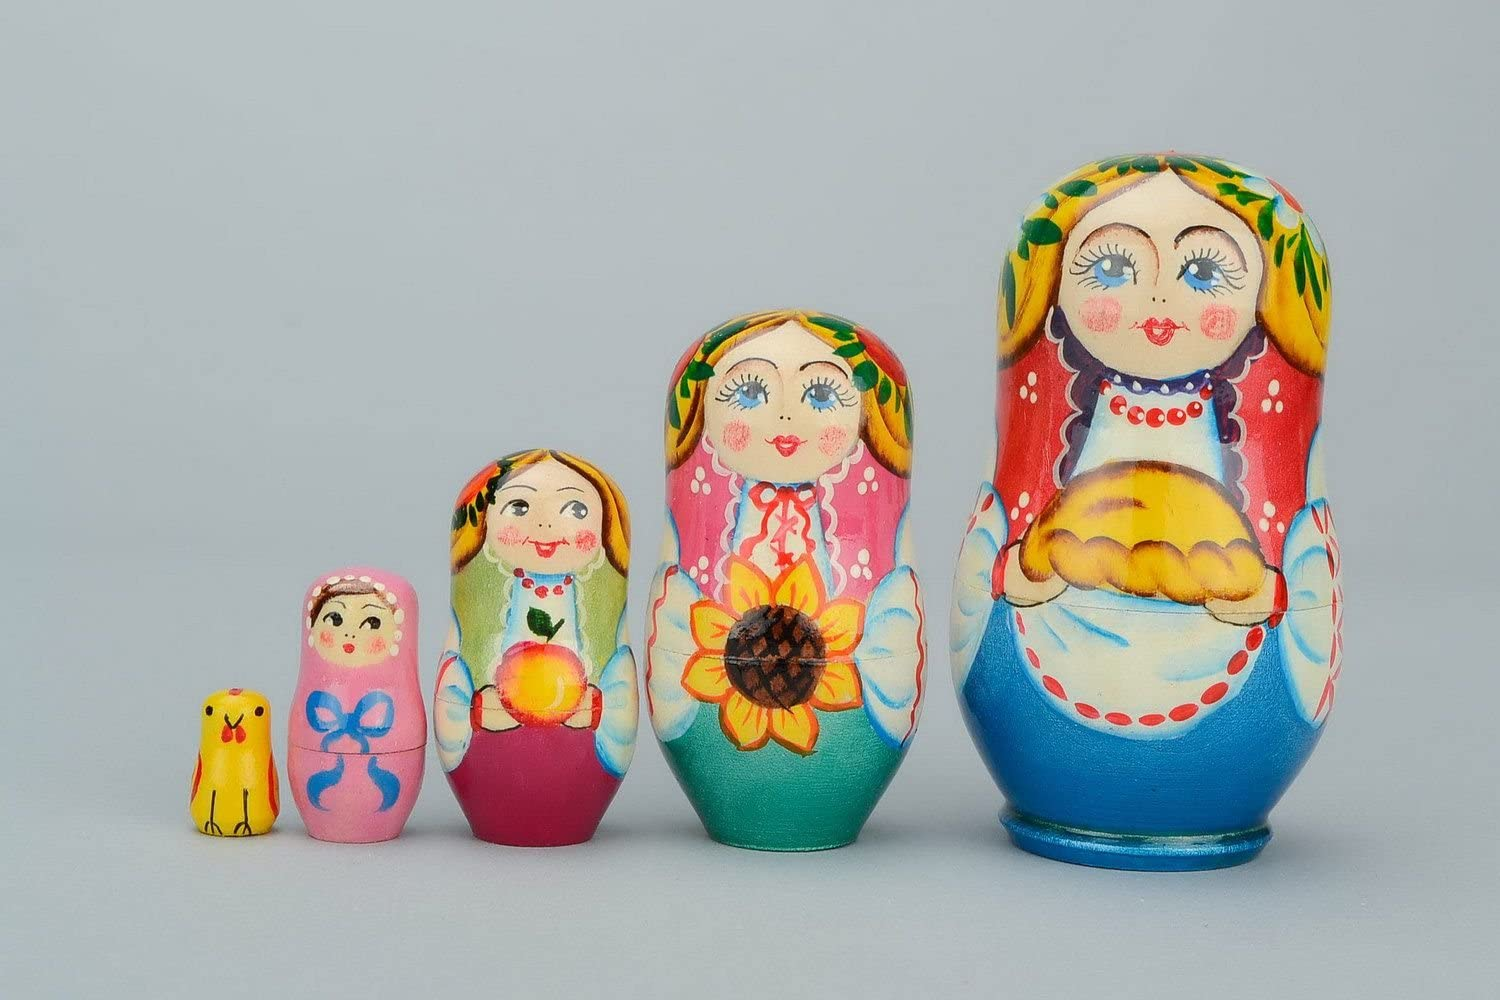 Wooden Matryoshka Doll With Loaf